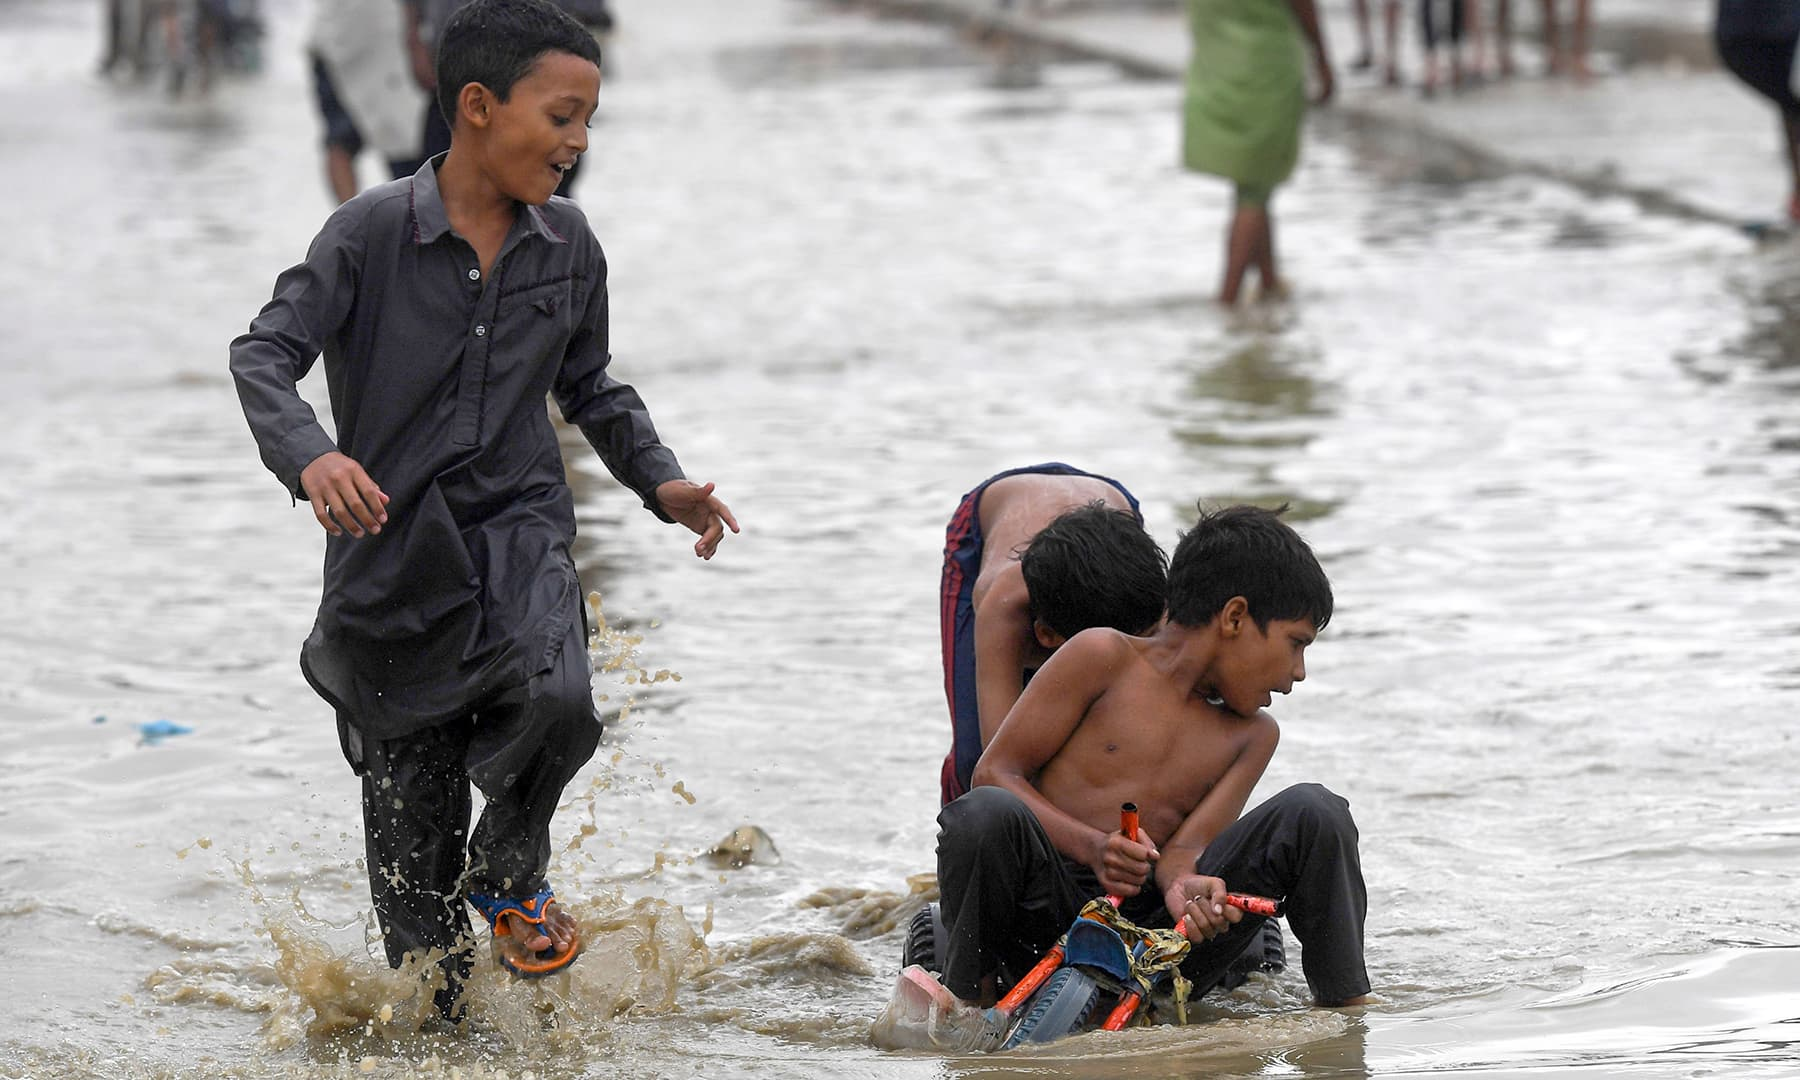 Children play in one of many flooded streets in Karachi on Tuesday. — AFP